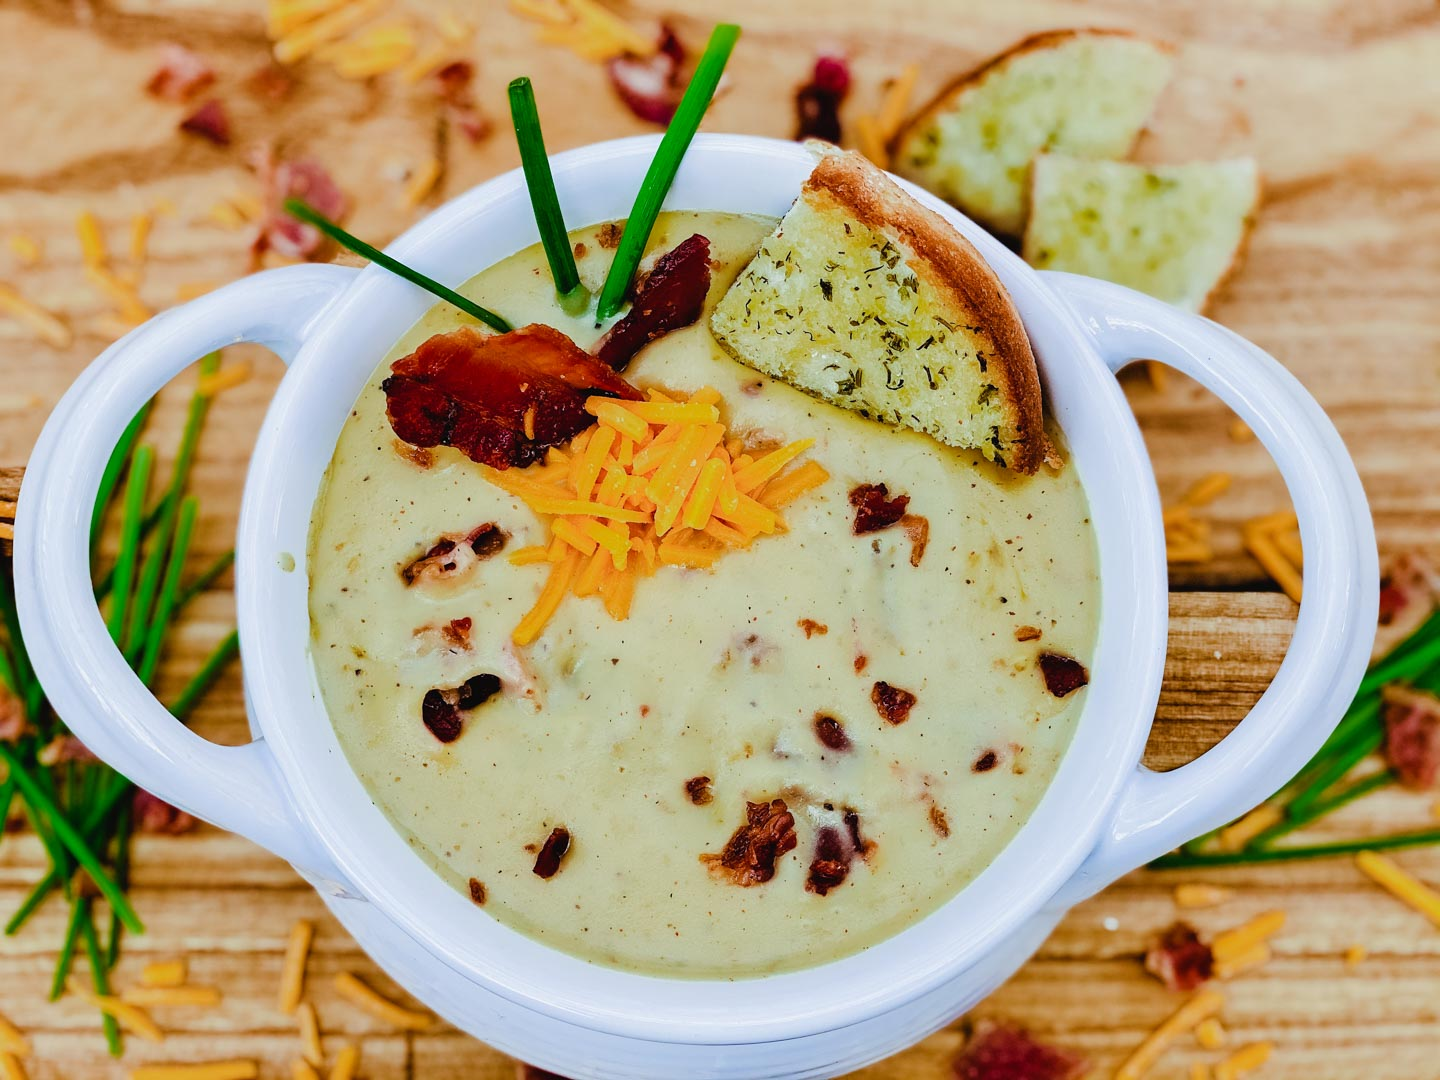 Potato soup in a white bowl with bacon and chives on a wood board.